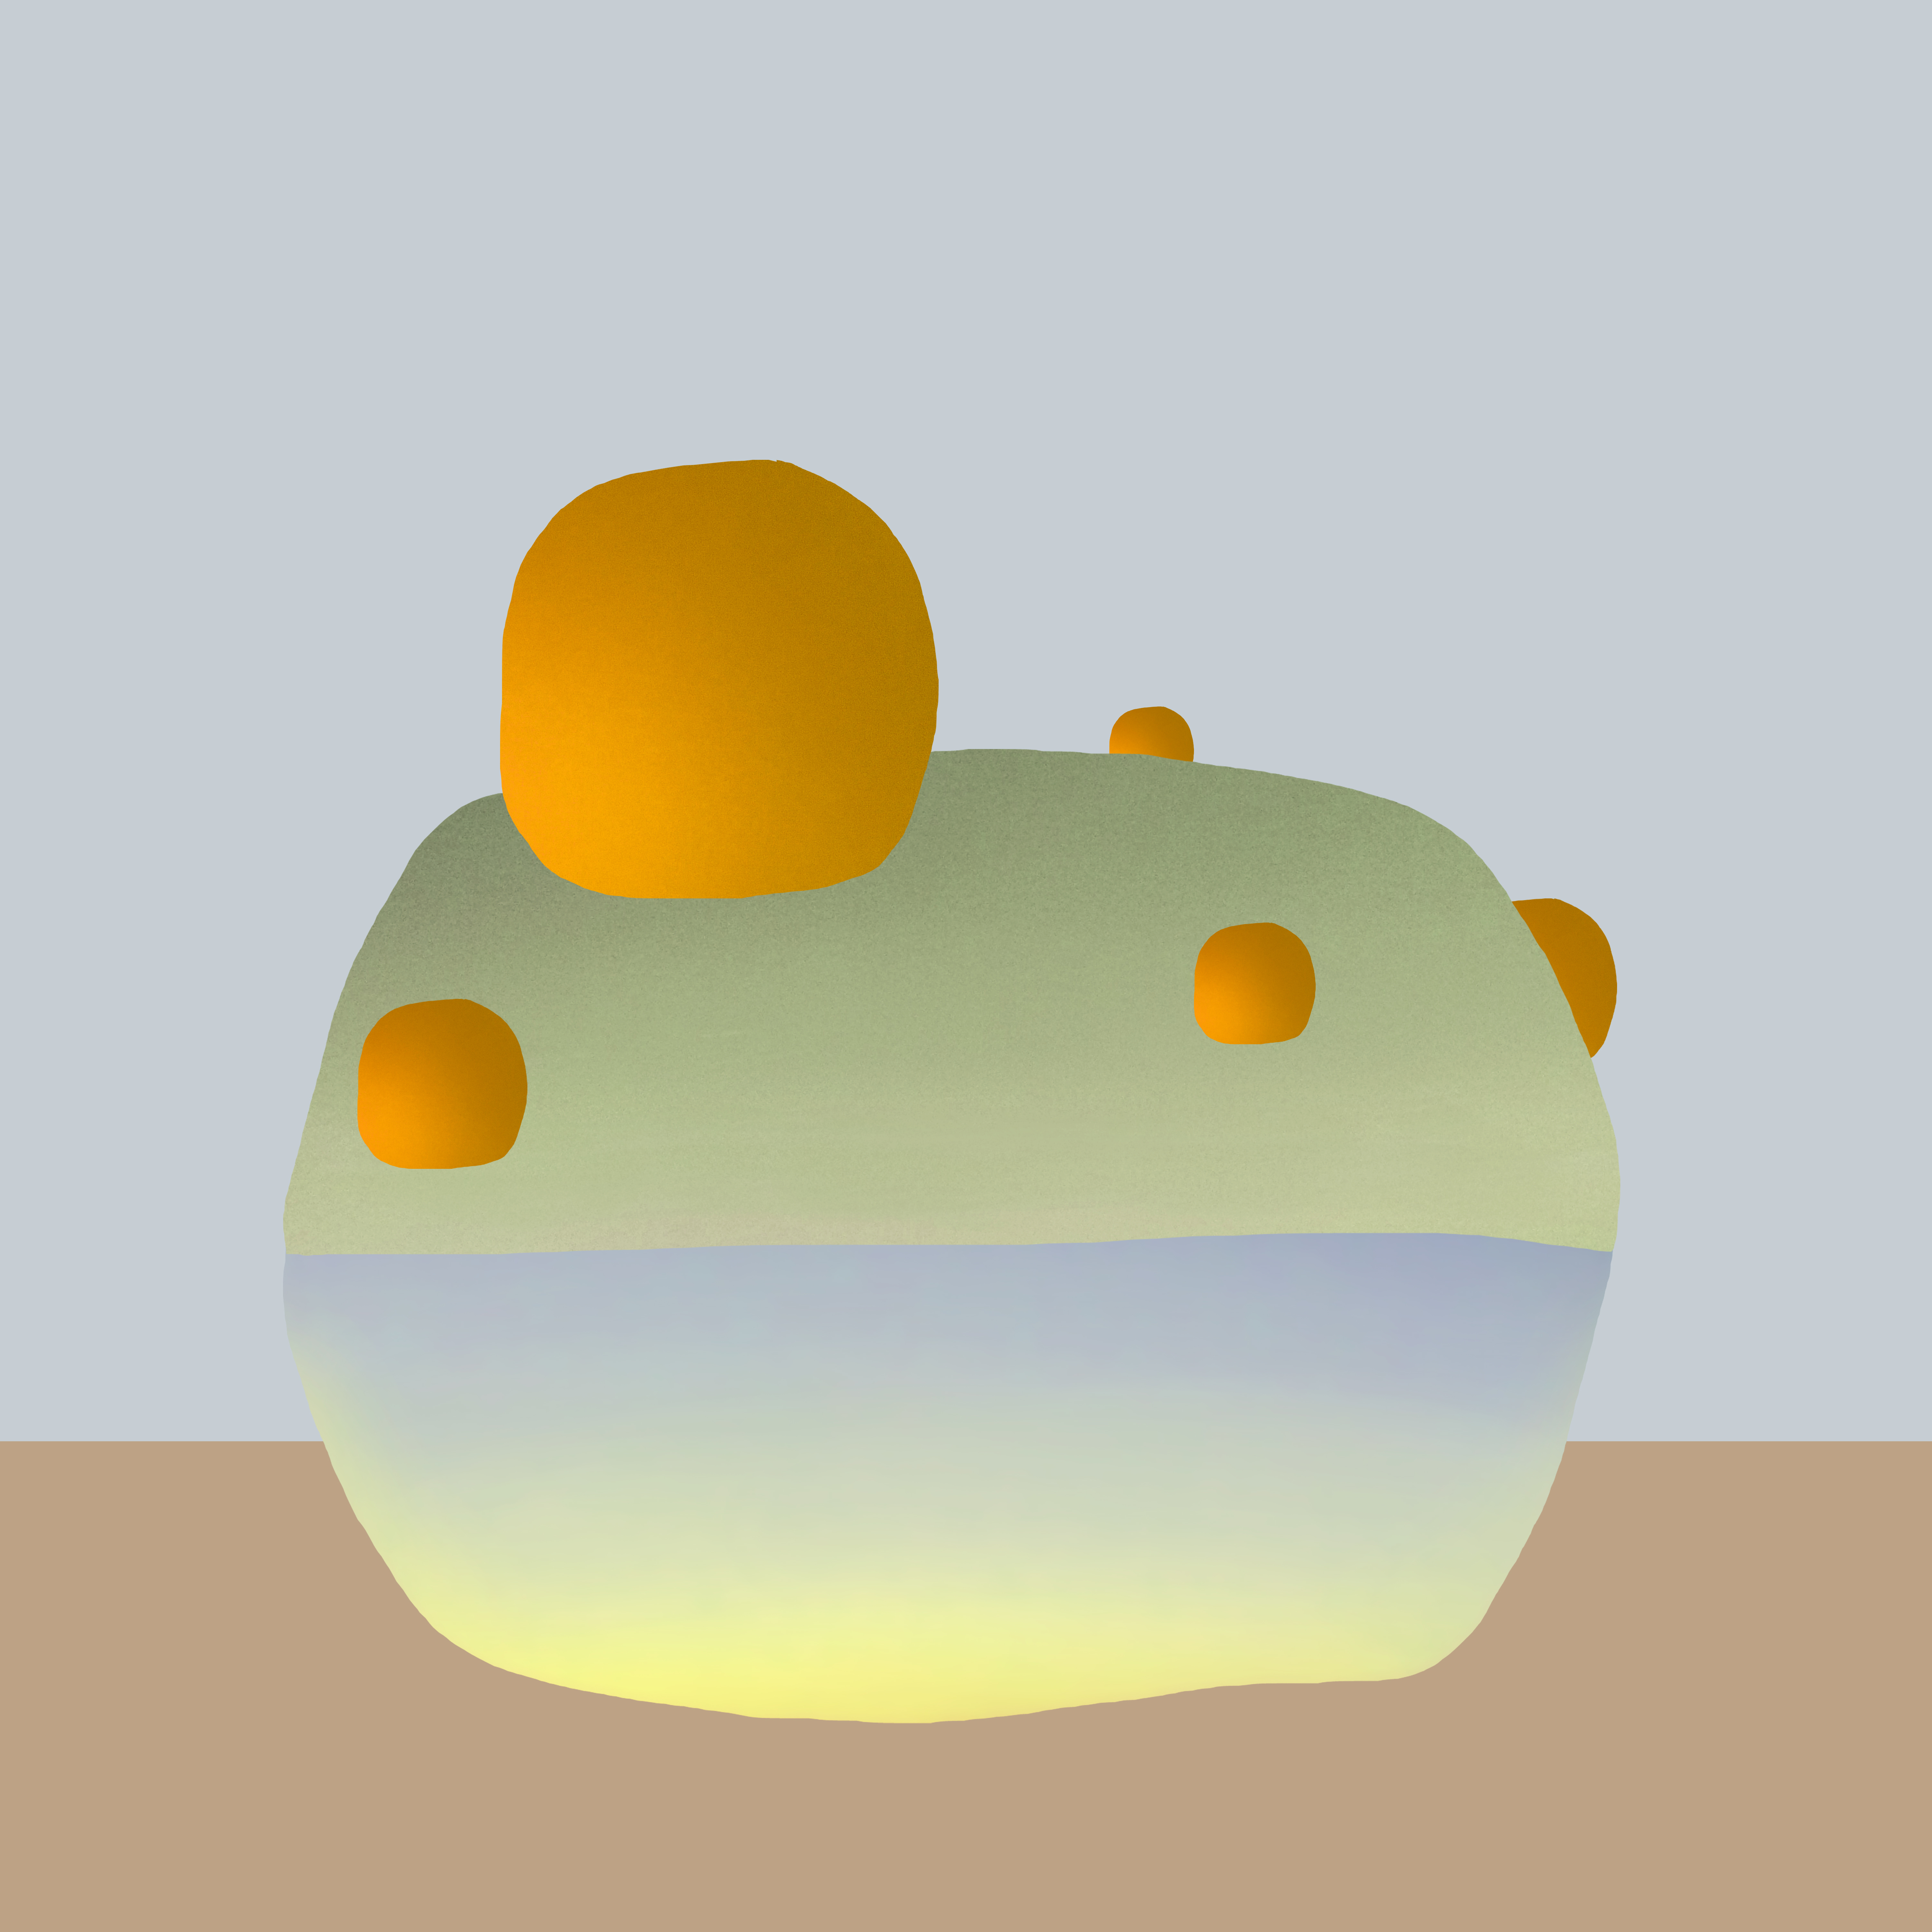 An abstract composition featuring a large spherical shape with smaller orange spheres surrounding